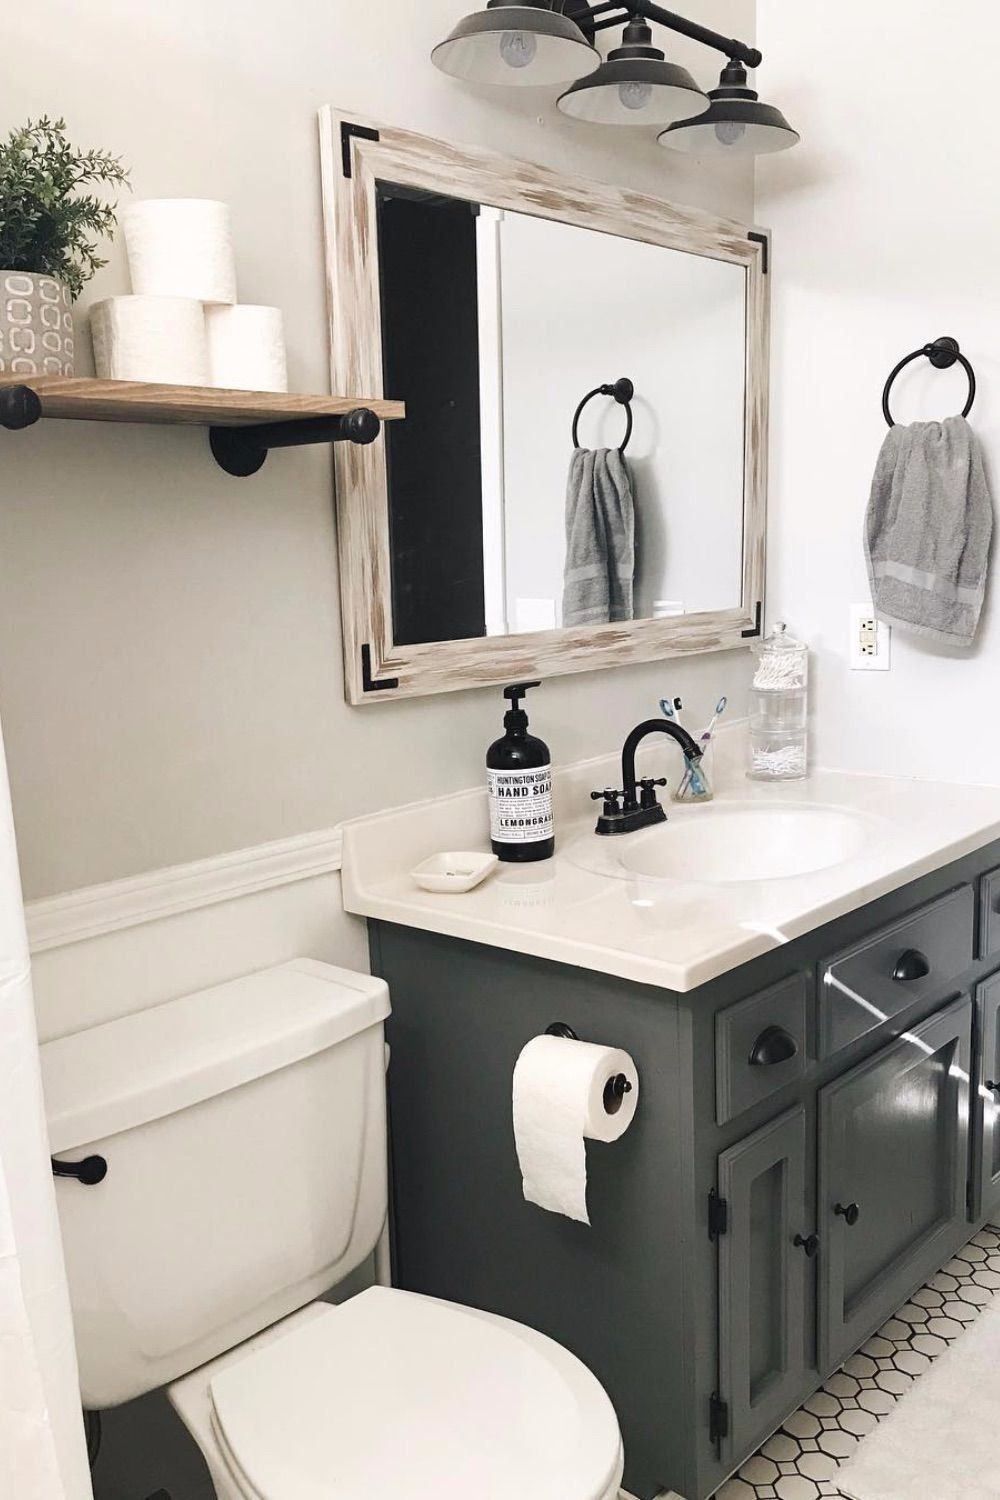 Click For Guest Bathroom Ideas That Are Easy To Do Swankyden Com 2020 1000 In 2020 Guest Bathrooms Bathroom Interior Bathroom Decor